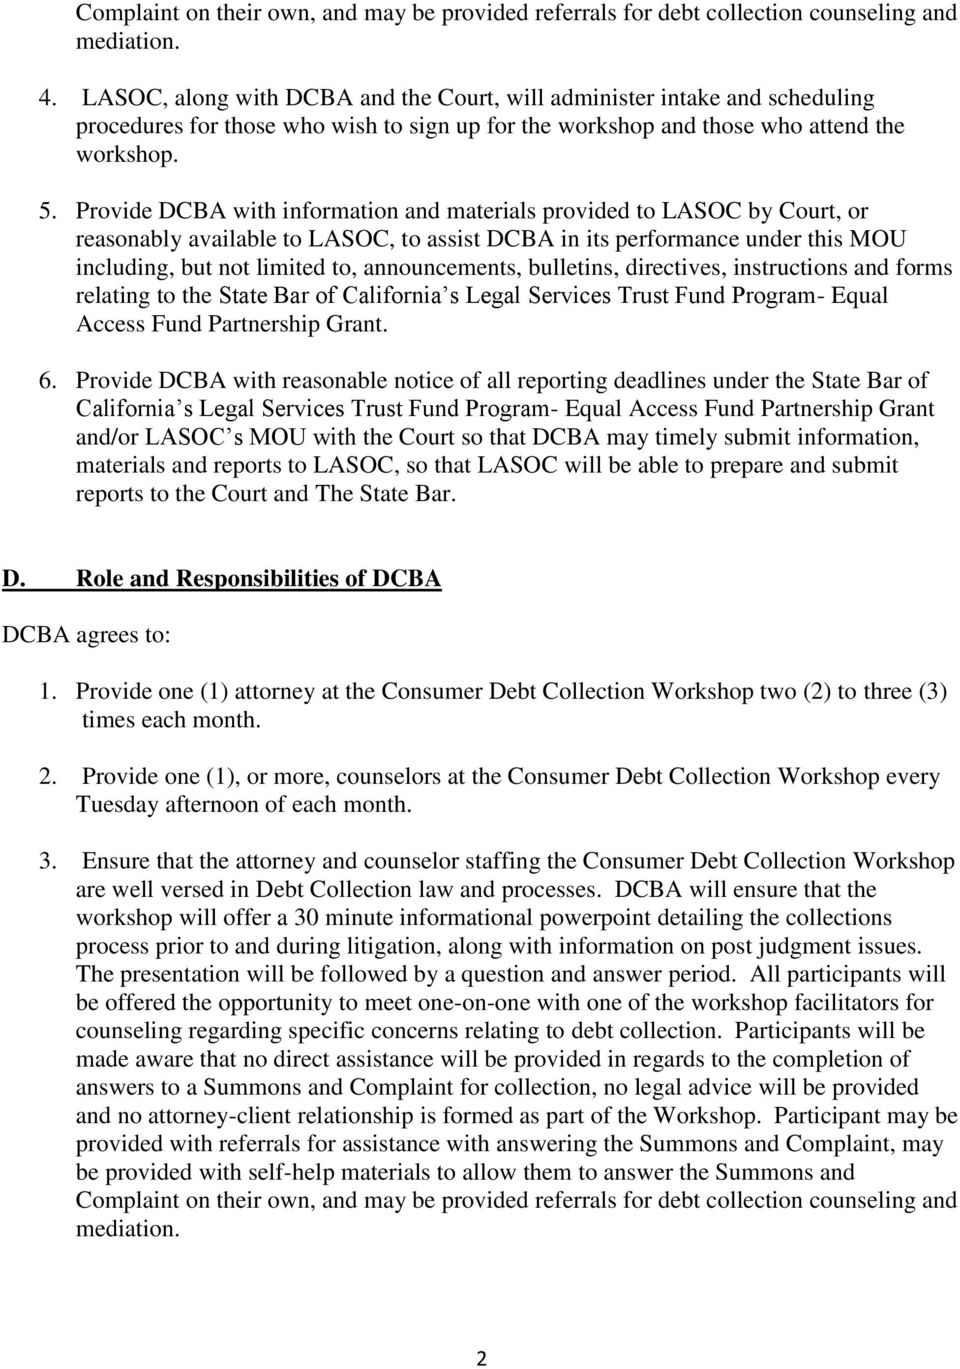 Provide DCBA with information and materials provided to LASOC by Court, or reasonably available to LASOC, to assist DCBA in its performance under this MOU including, but not limited to,